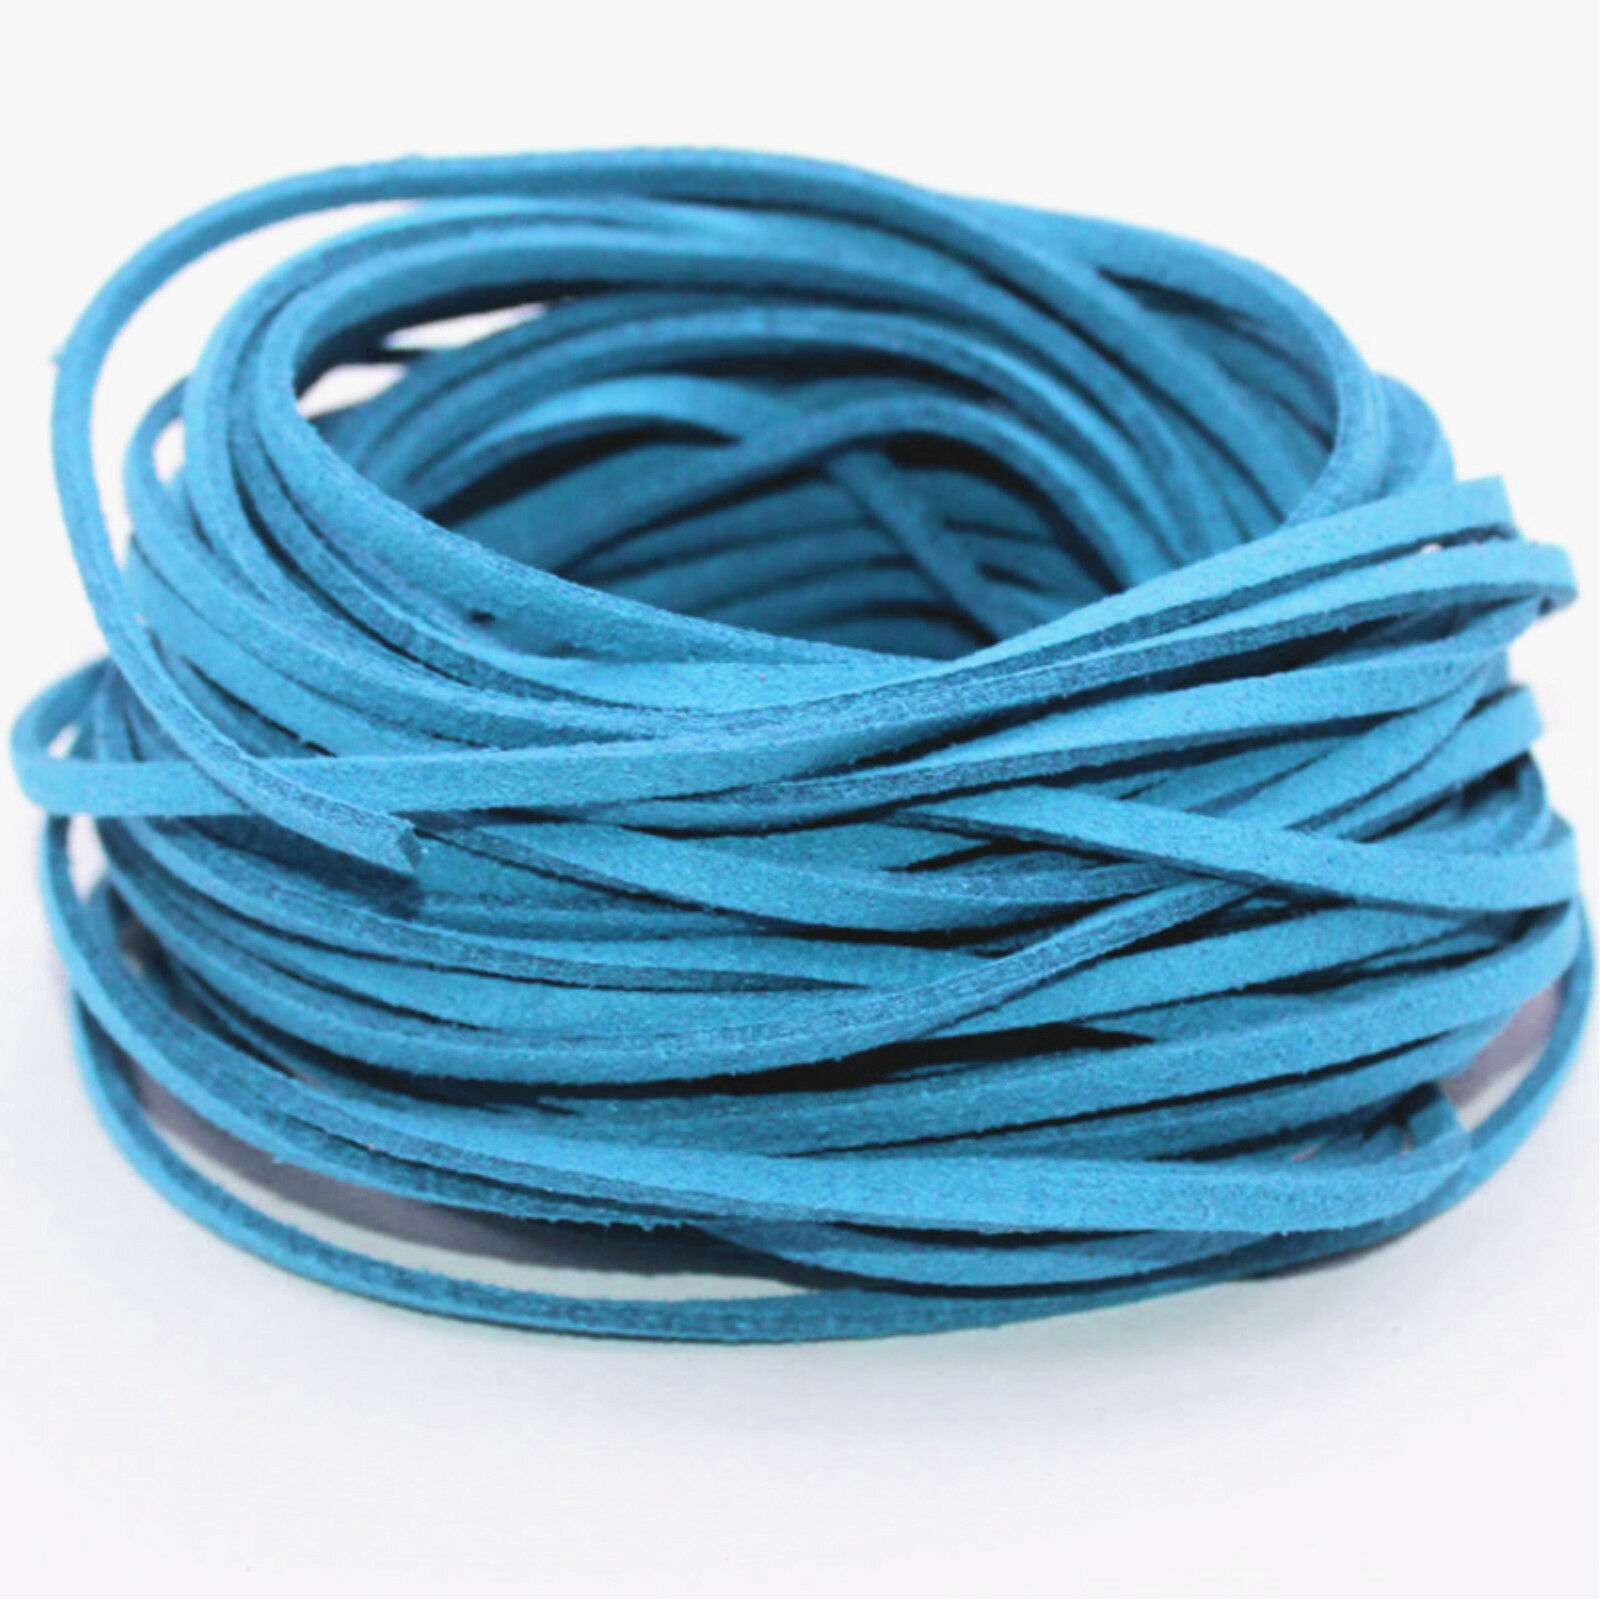 10yd Wholesale 3mm Suede Leather String Jewelry Making Bracelet DIY ...